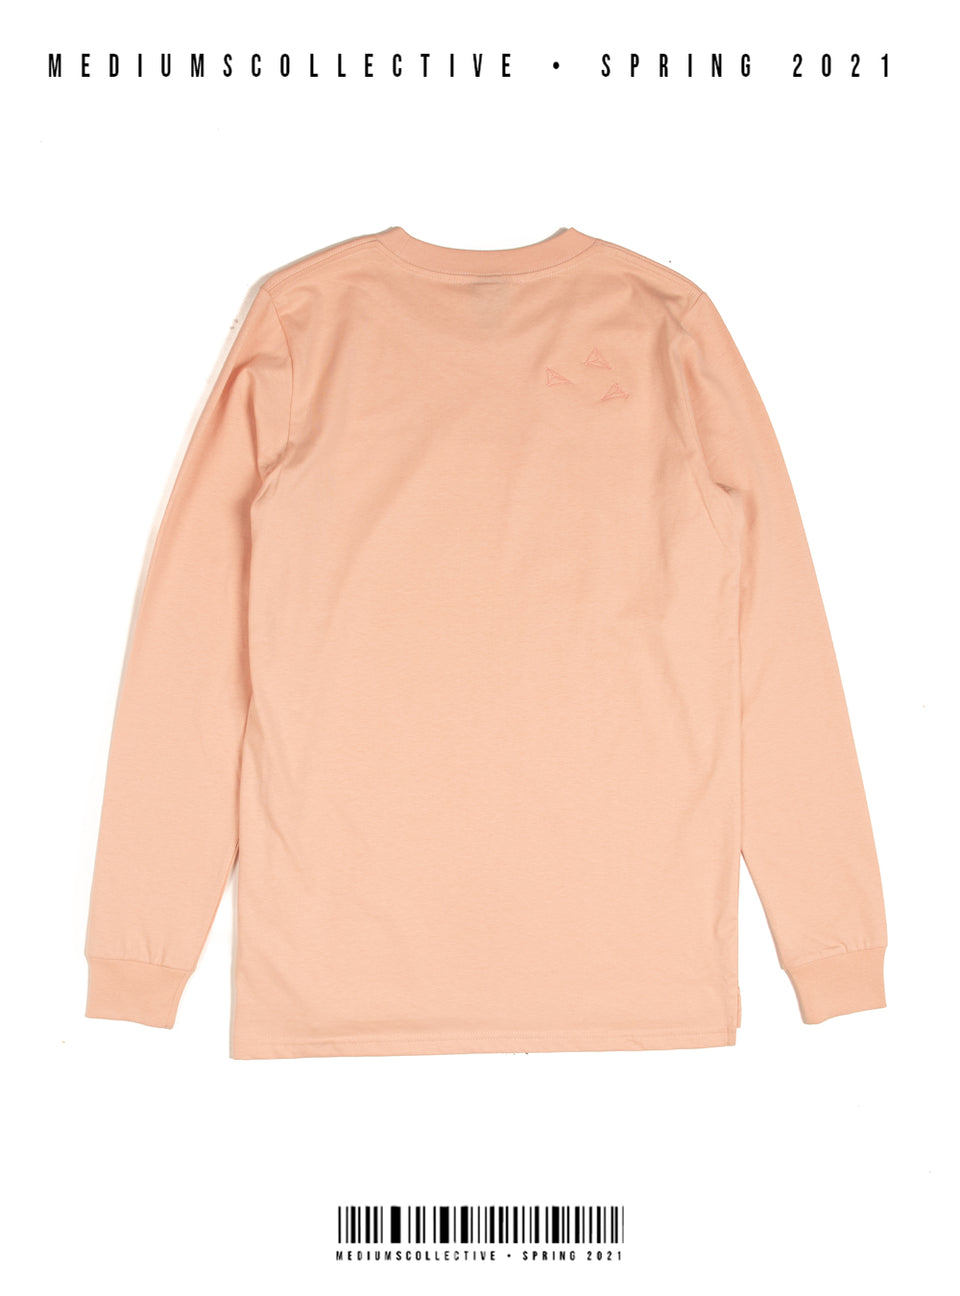 long sleeve, pink, pink salmon, tshirt, spring collection, chess not checkers, premium, cotton, mediums, mediumscollective, designer shirts, streetwear, urbanwear, hiphop fashion, hustle tshirt, old english font, navy, gold, nipsey hussle, knowledge